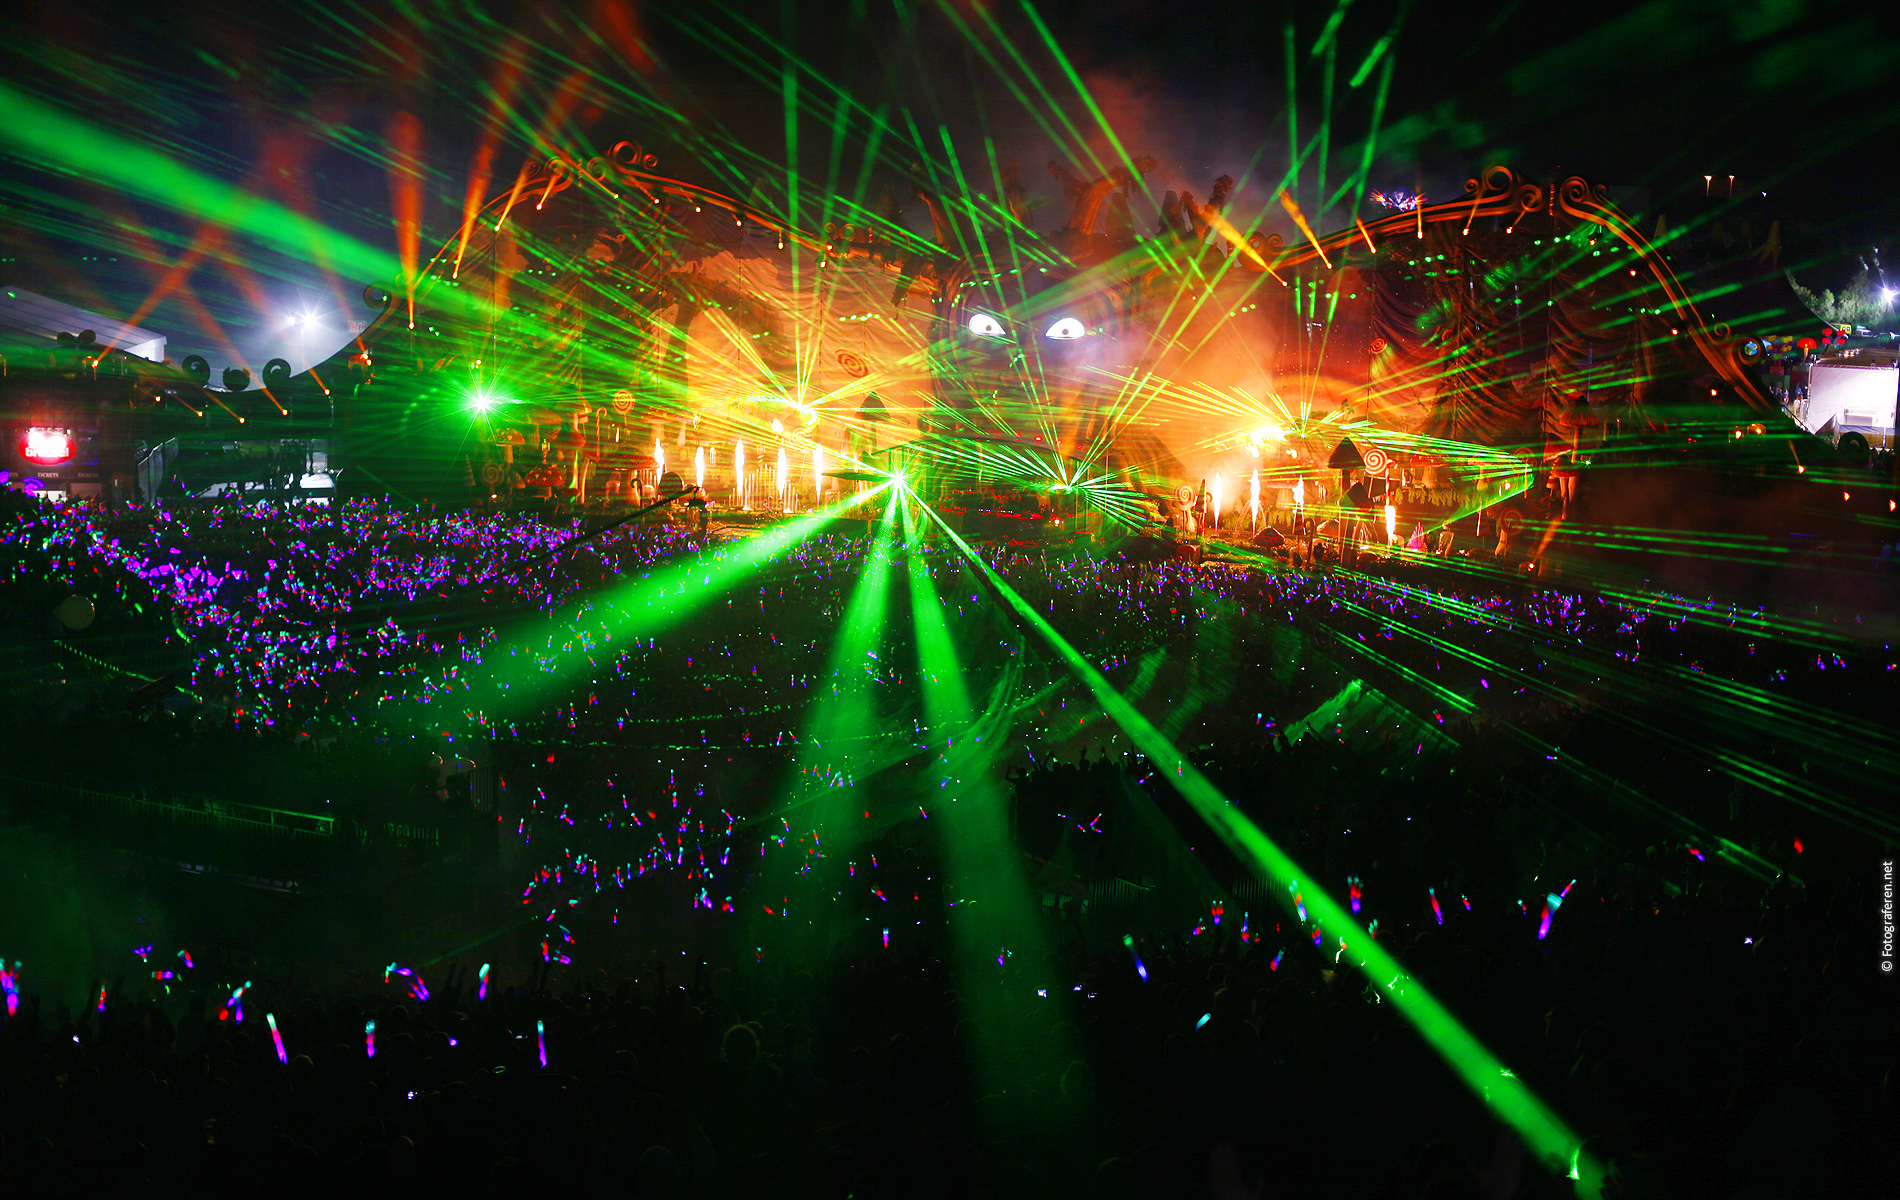 Tomorrowland 2011 Wallpaper (16:10 ratio) | This free hires ...